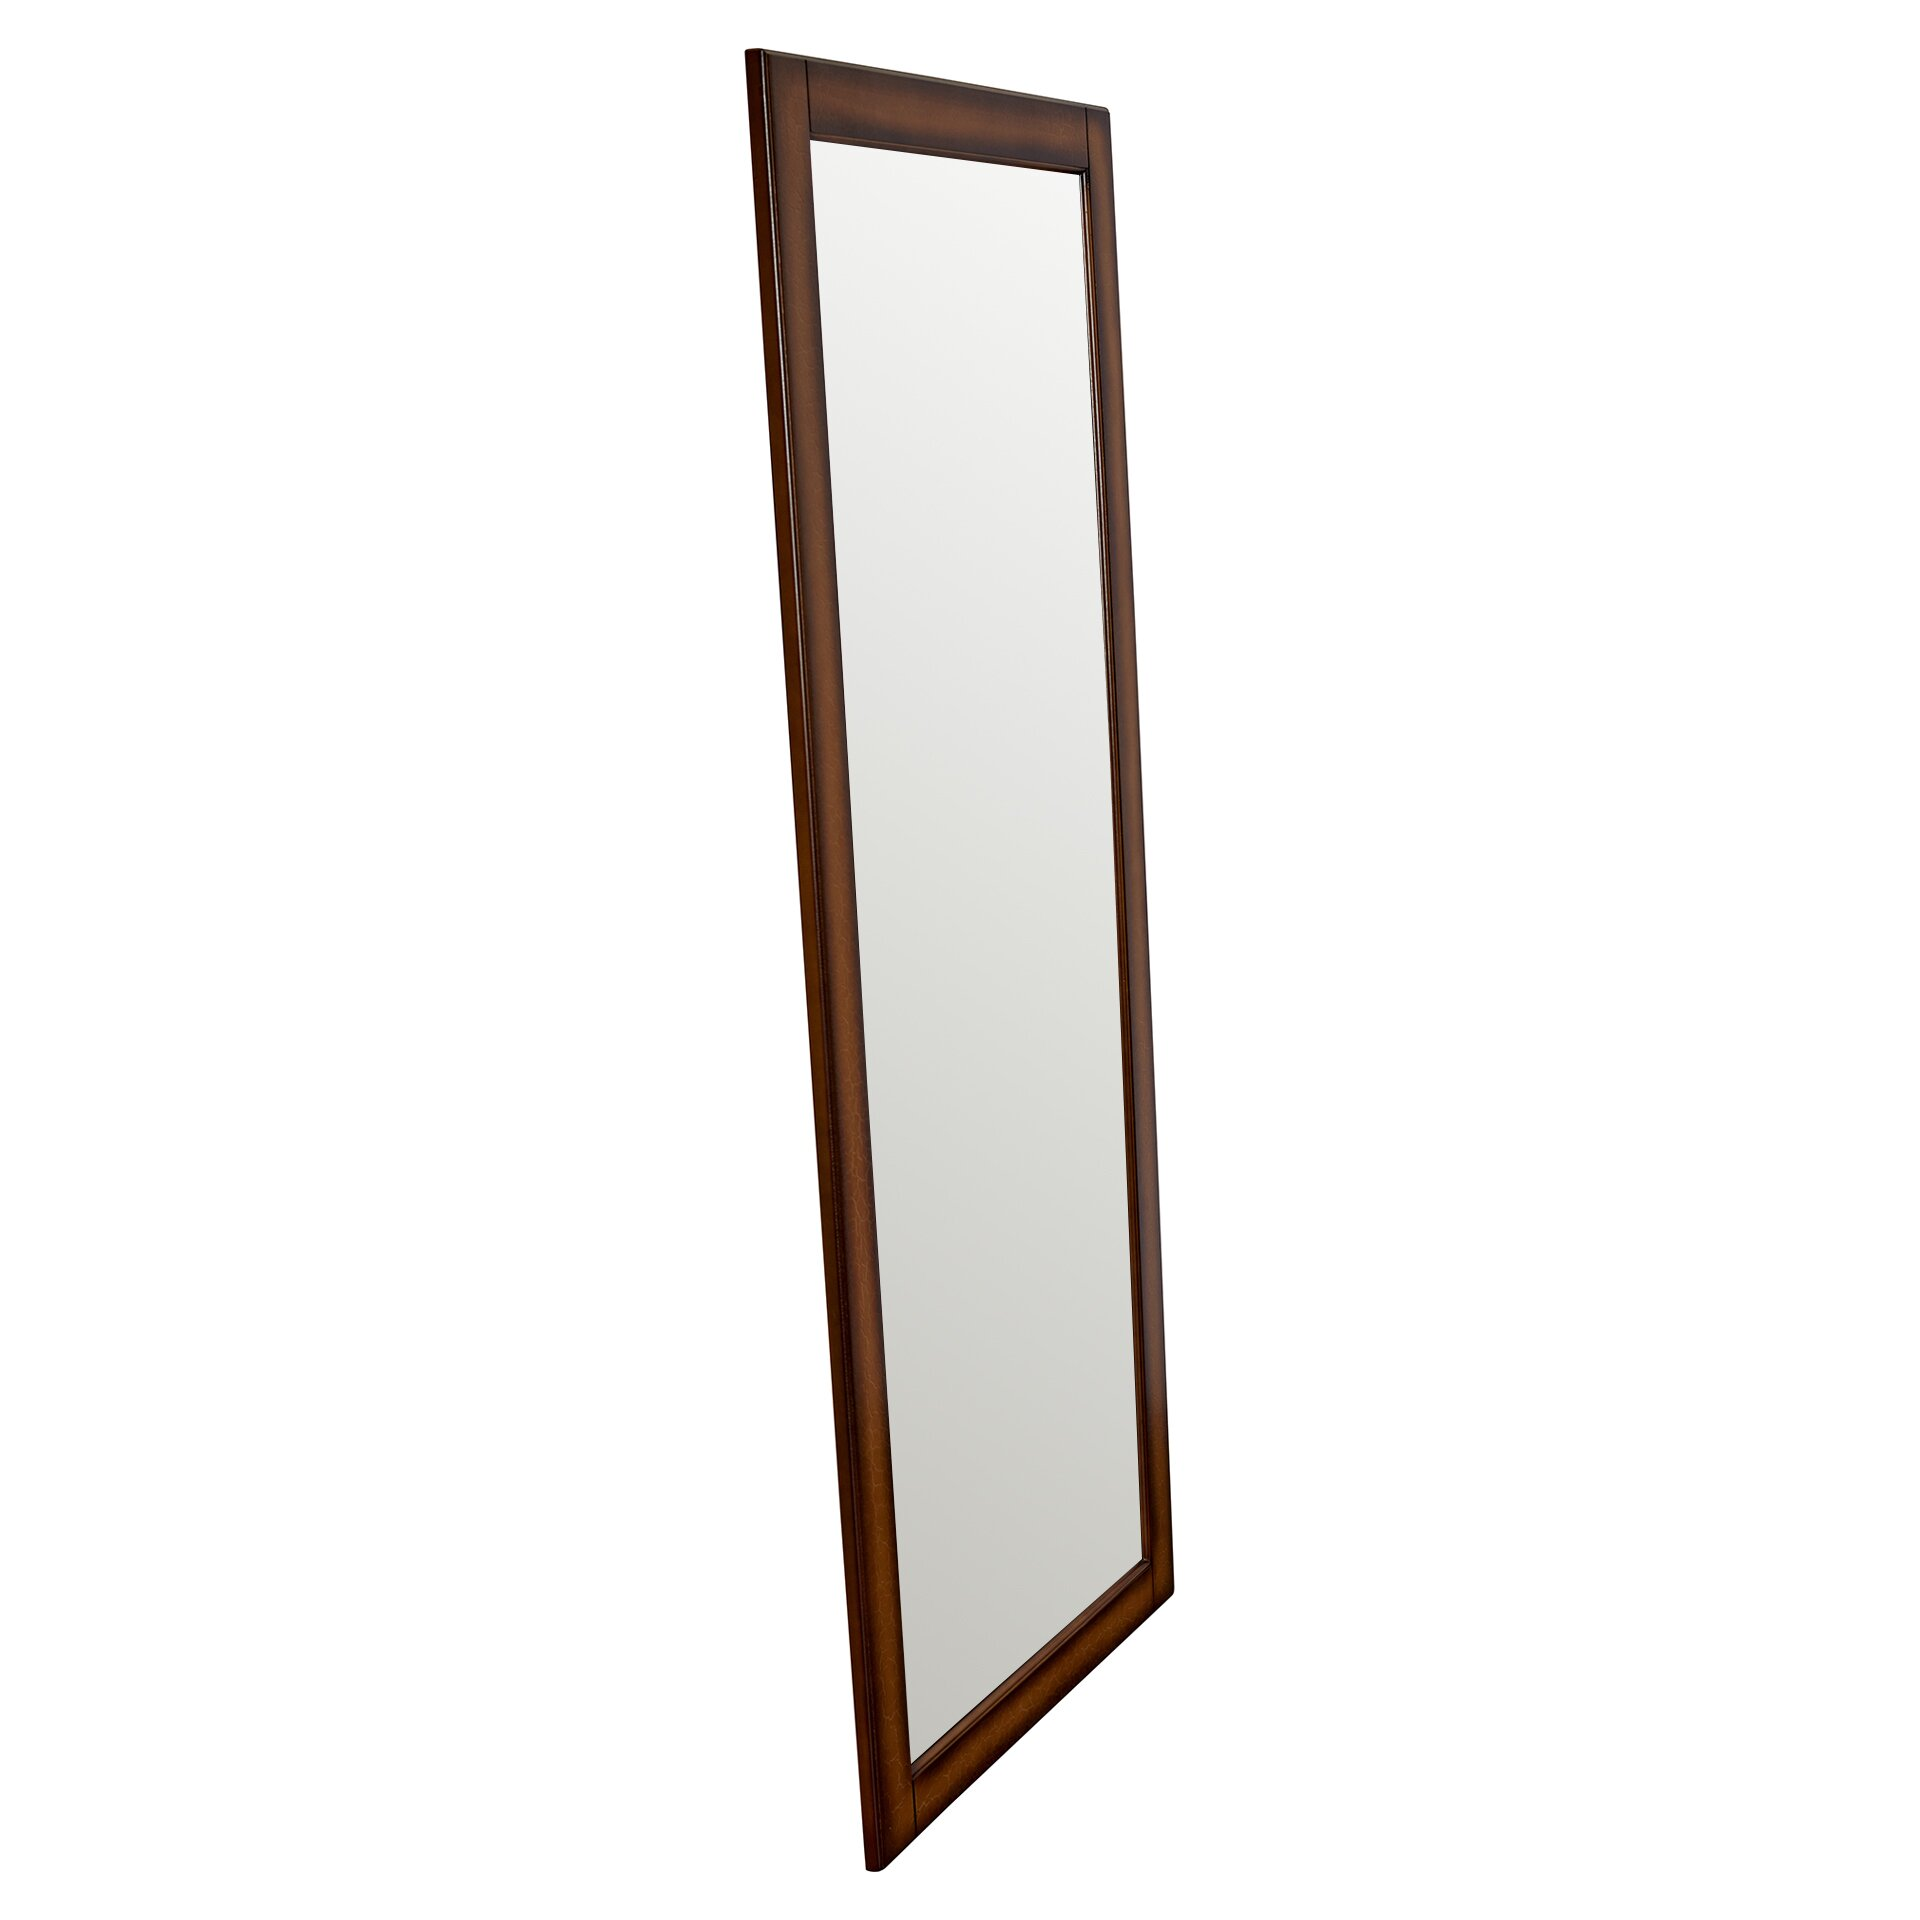 Darby Home Co Russell Leaning Floor Mirror Amp Reviews Wayfair